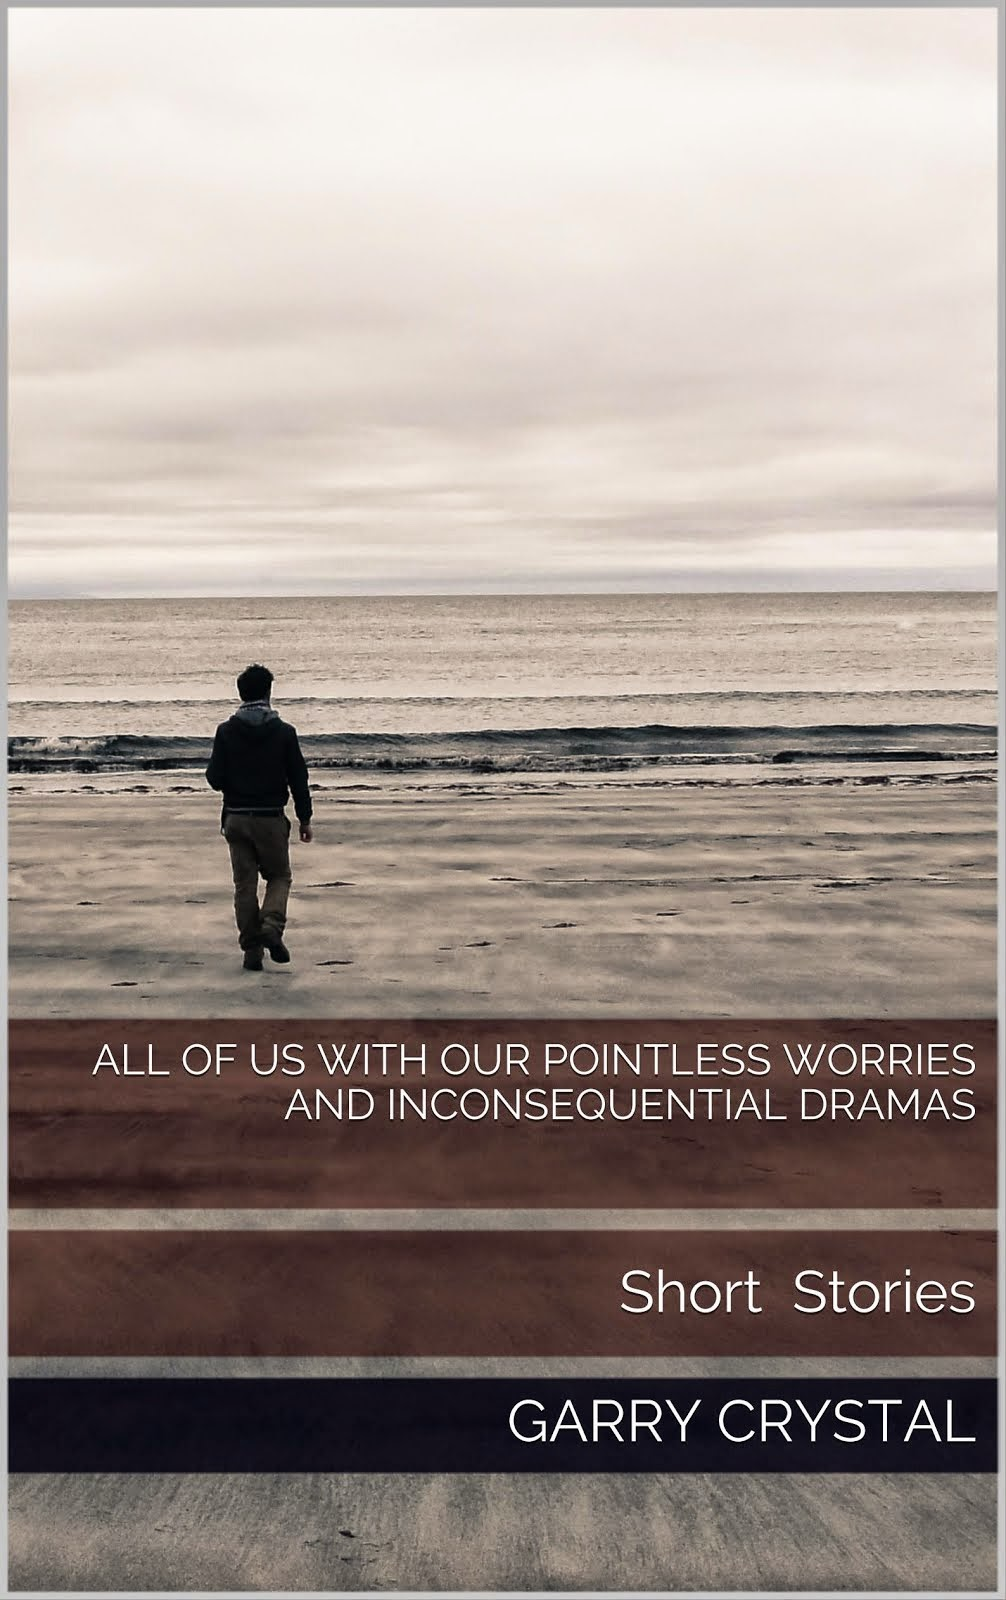 All of Us with Our Pointless Worries and Inconsequential Dramas: Short Stories